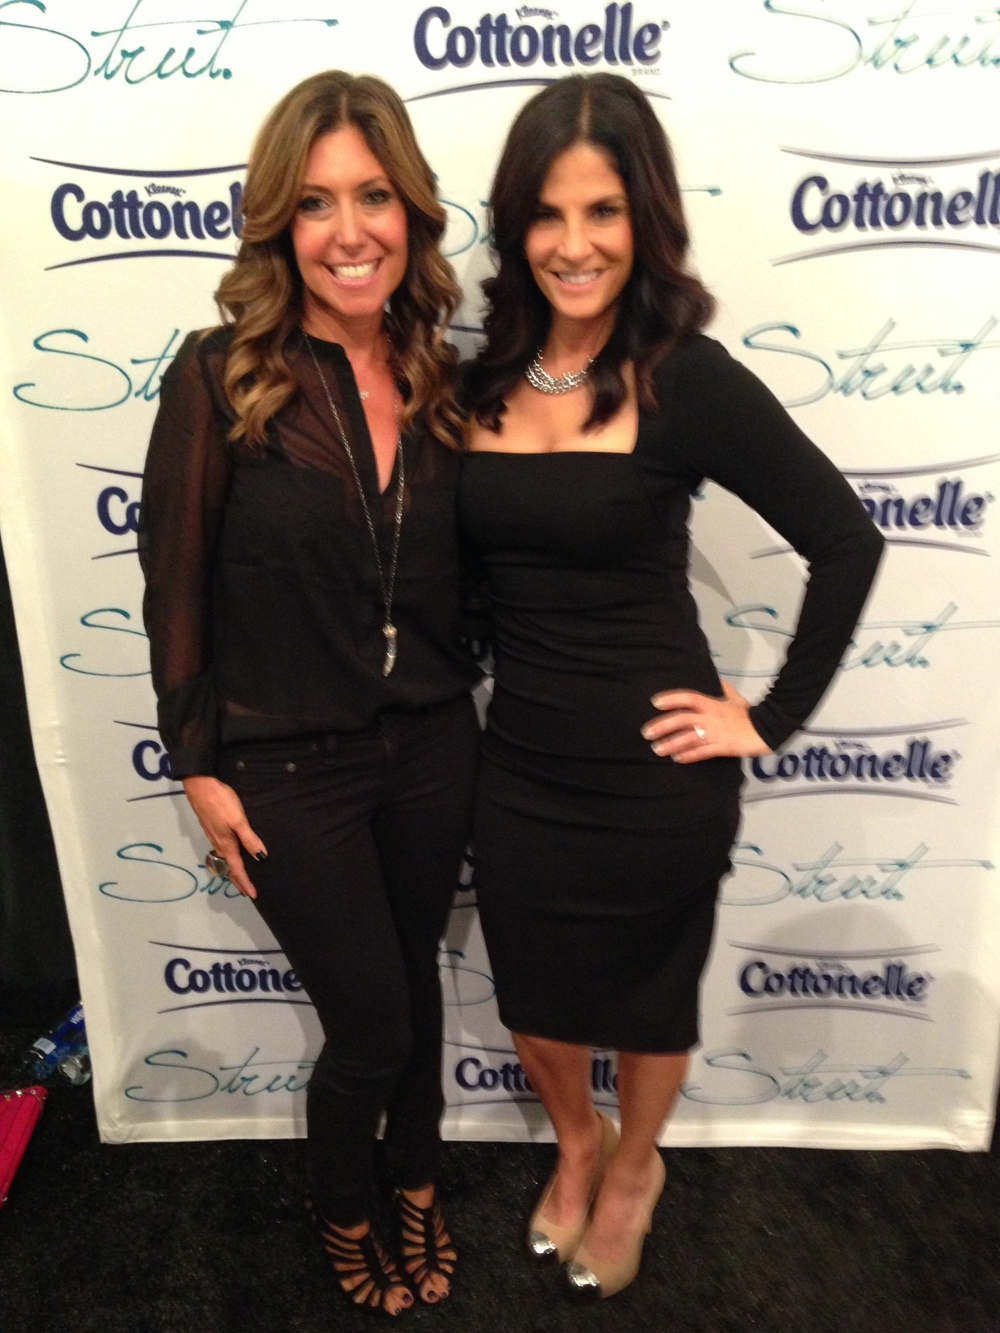 Posing with Darlene Rodriguez of NBC New York!